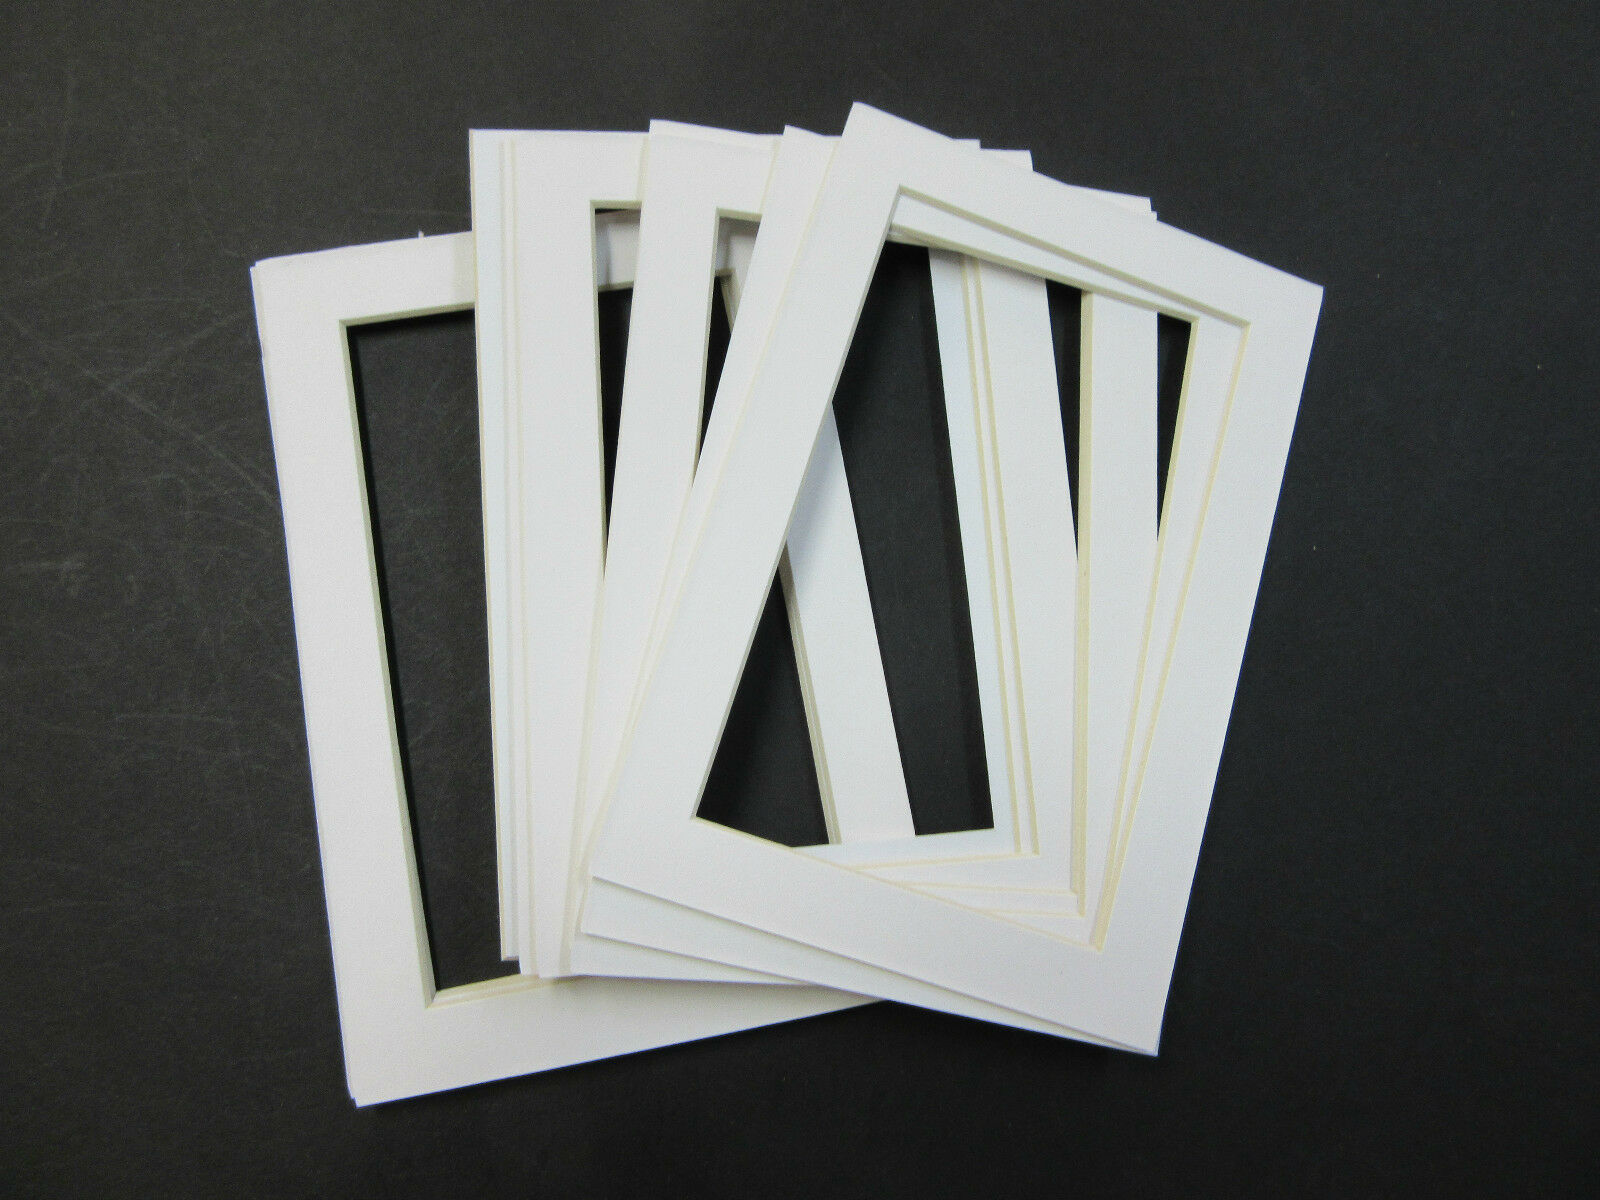 PICTURE FRAME MAT 4x6 for 3.5x5 photo set of 6 mats White color ...